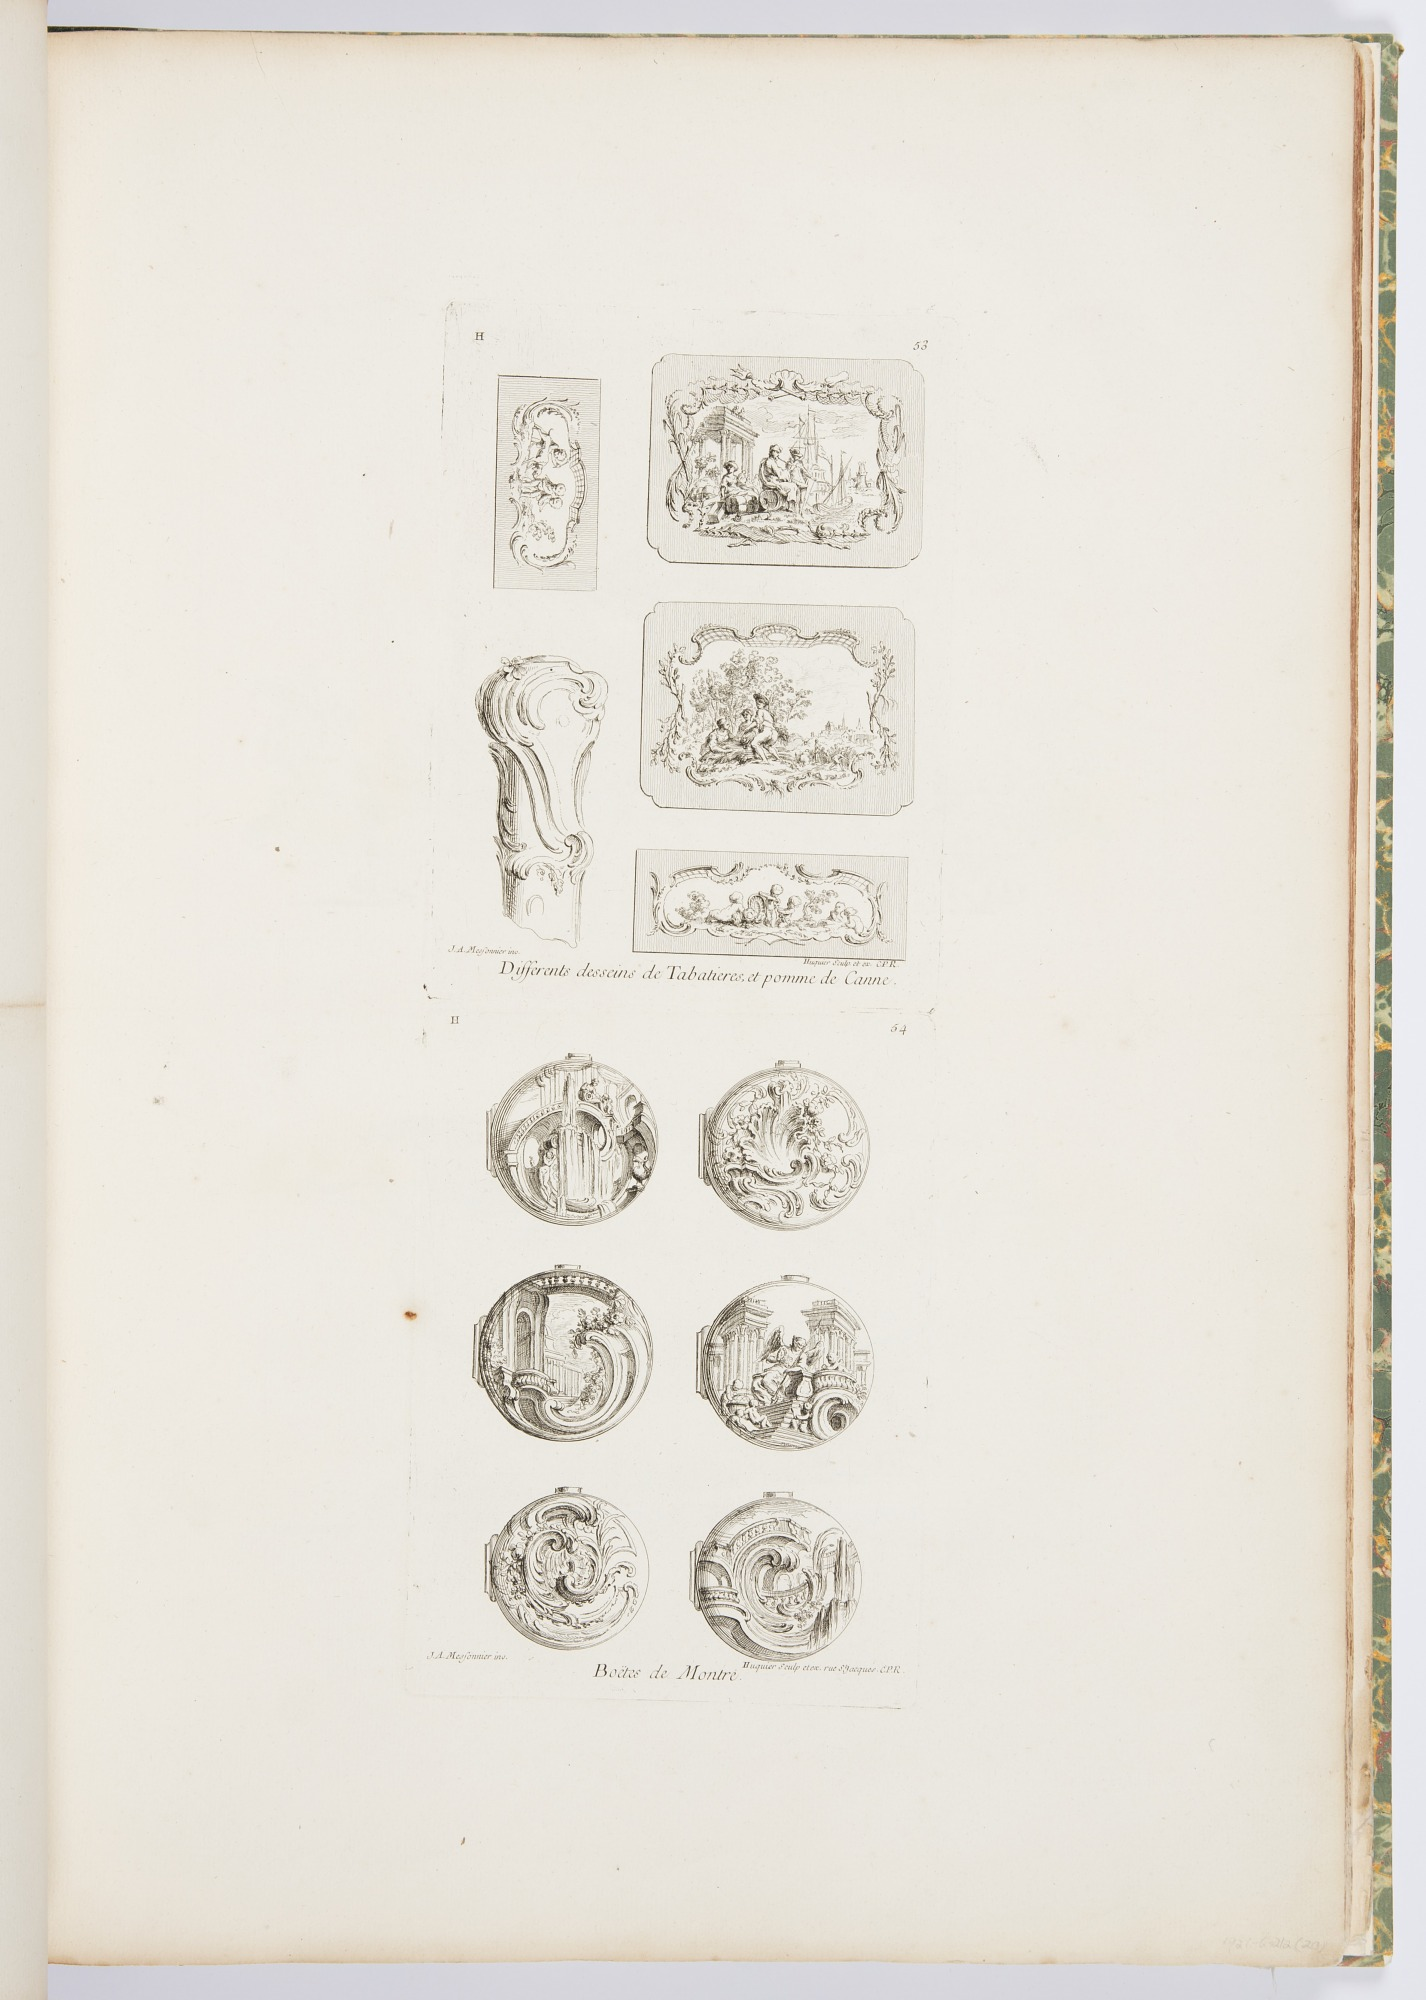 Differents desseins de Tabatières, et pomme de canne, cinquième planche [Different Designs for Snuff Boxes and a Cane Handle, 5th Plate], pl. 53 in Oeuvre de Juste-Aurèle Meissonnier